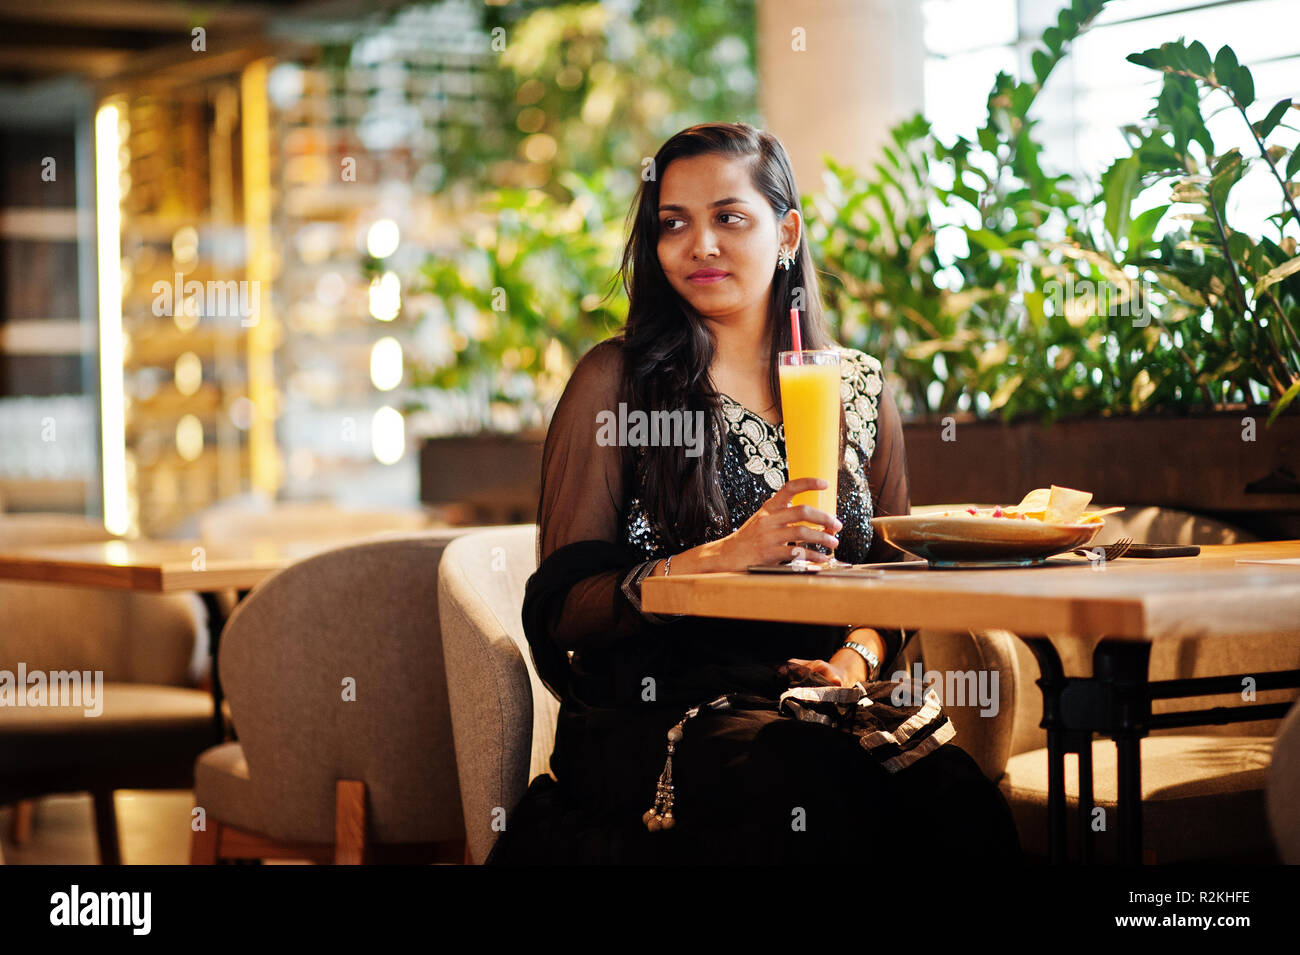 Black Girl In Restaurant